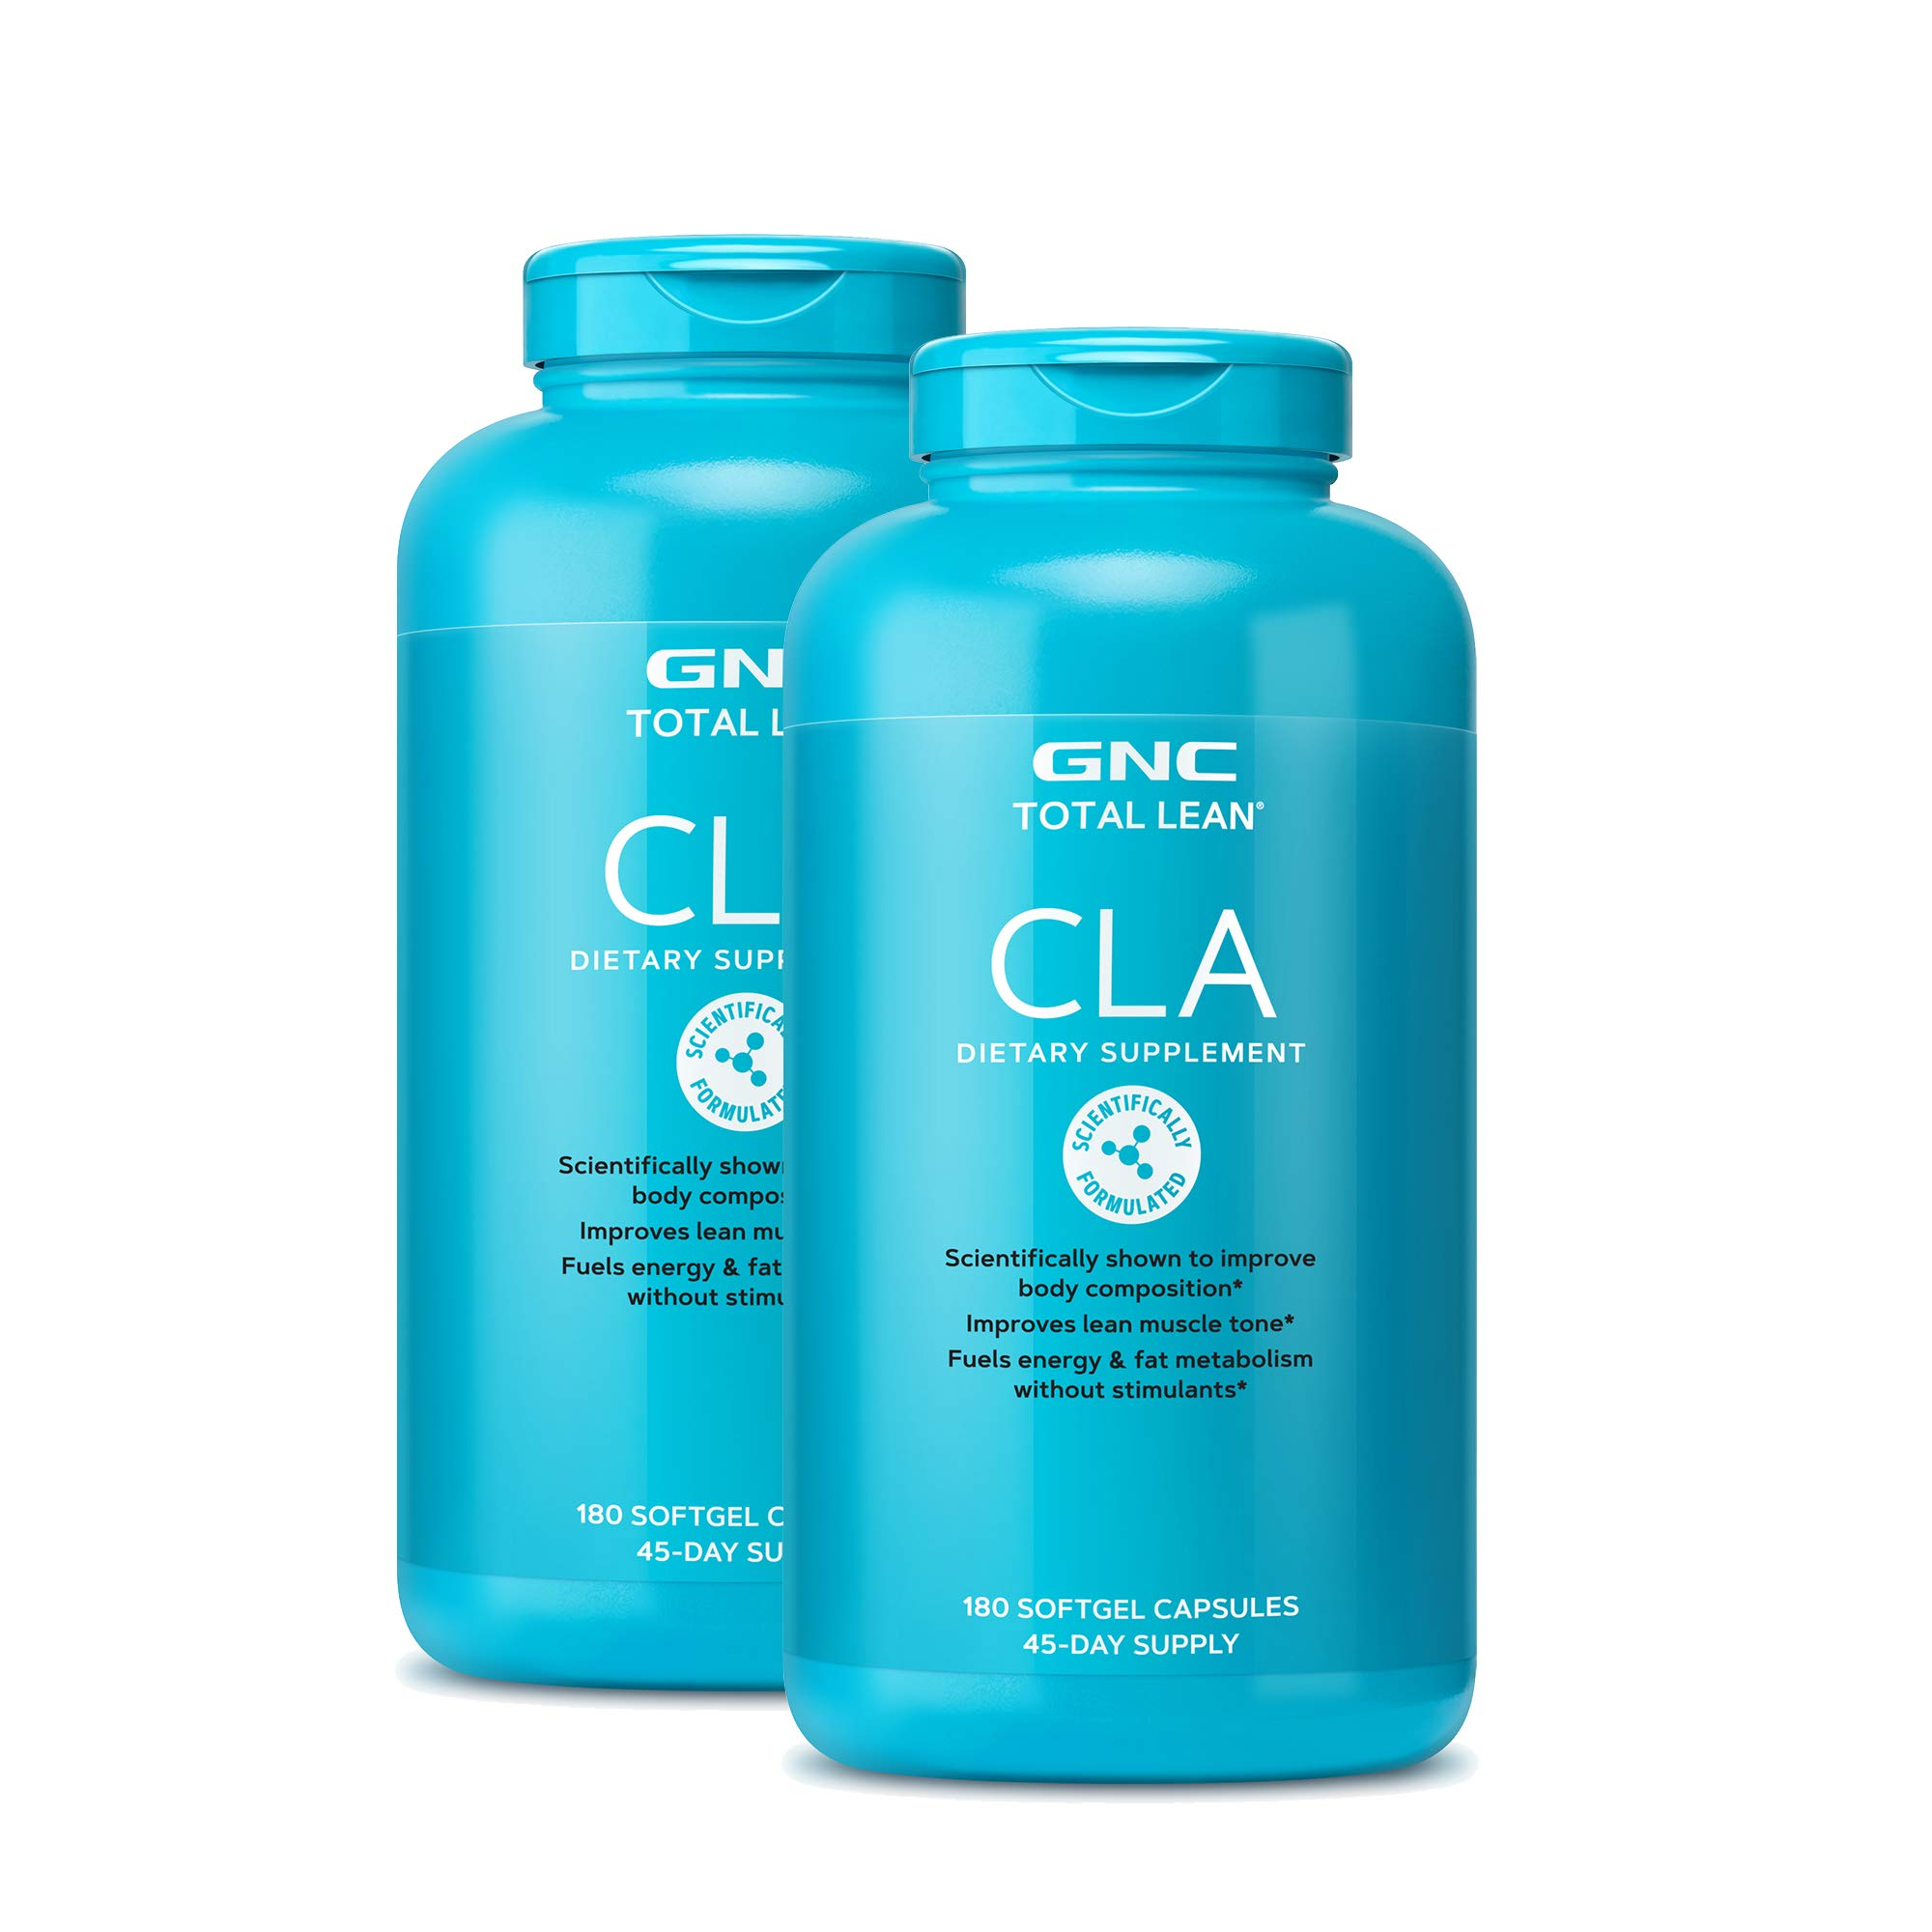 GNC Total Lean CLA - Twin Pack by GNC (Image #1)